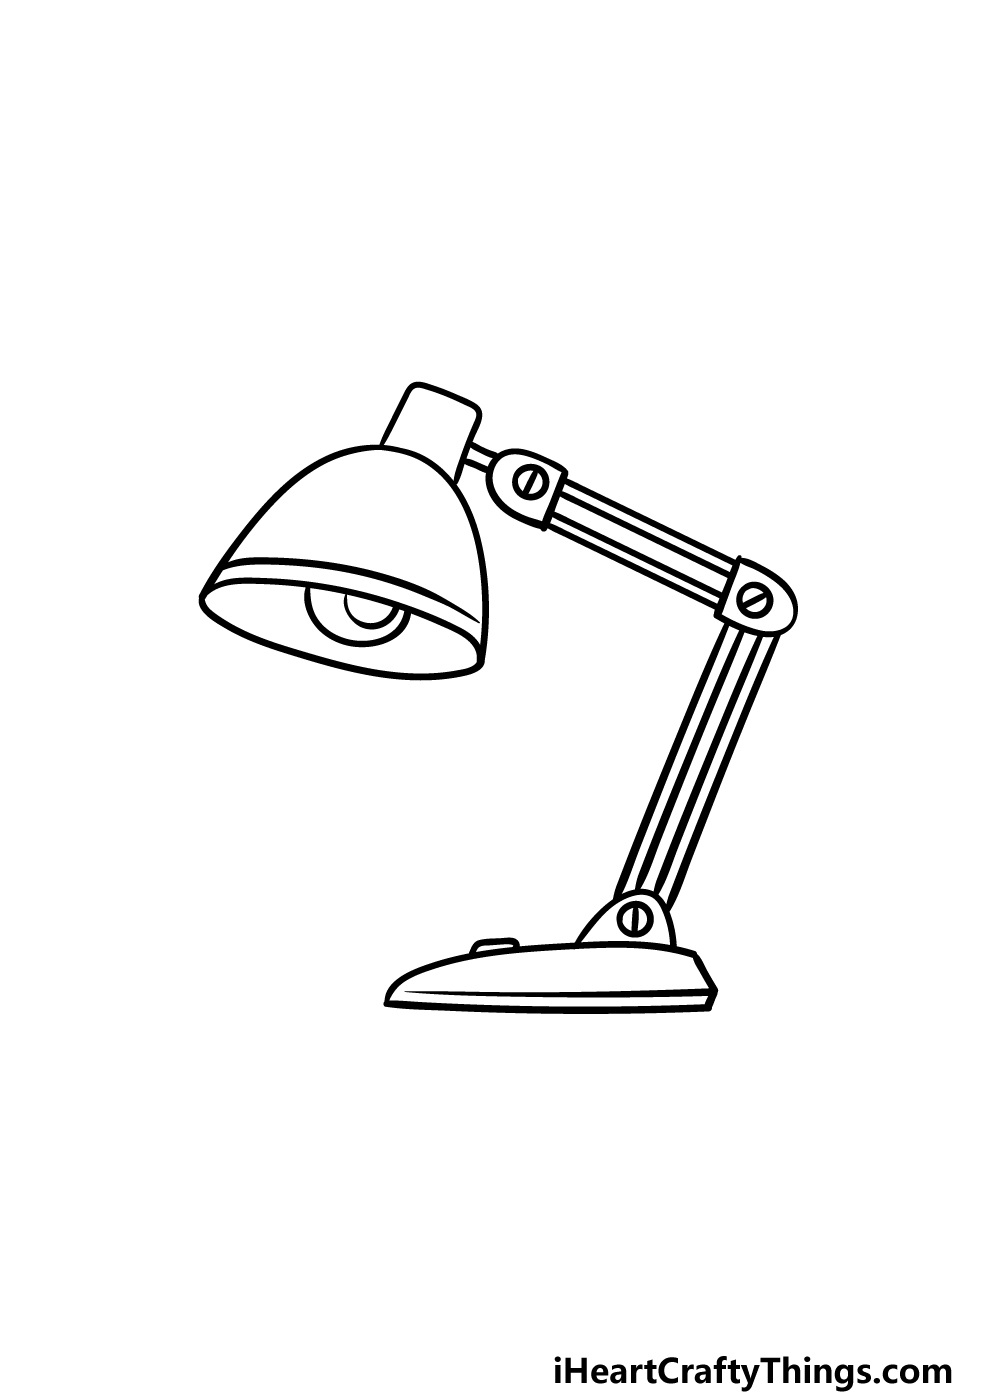 drawing a lamp step 4